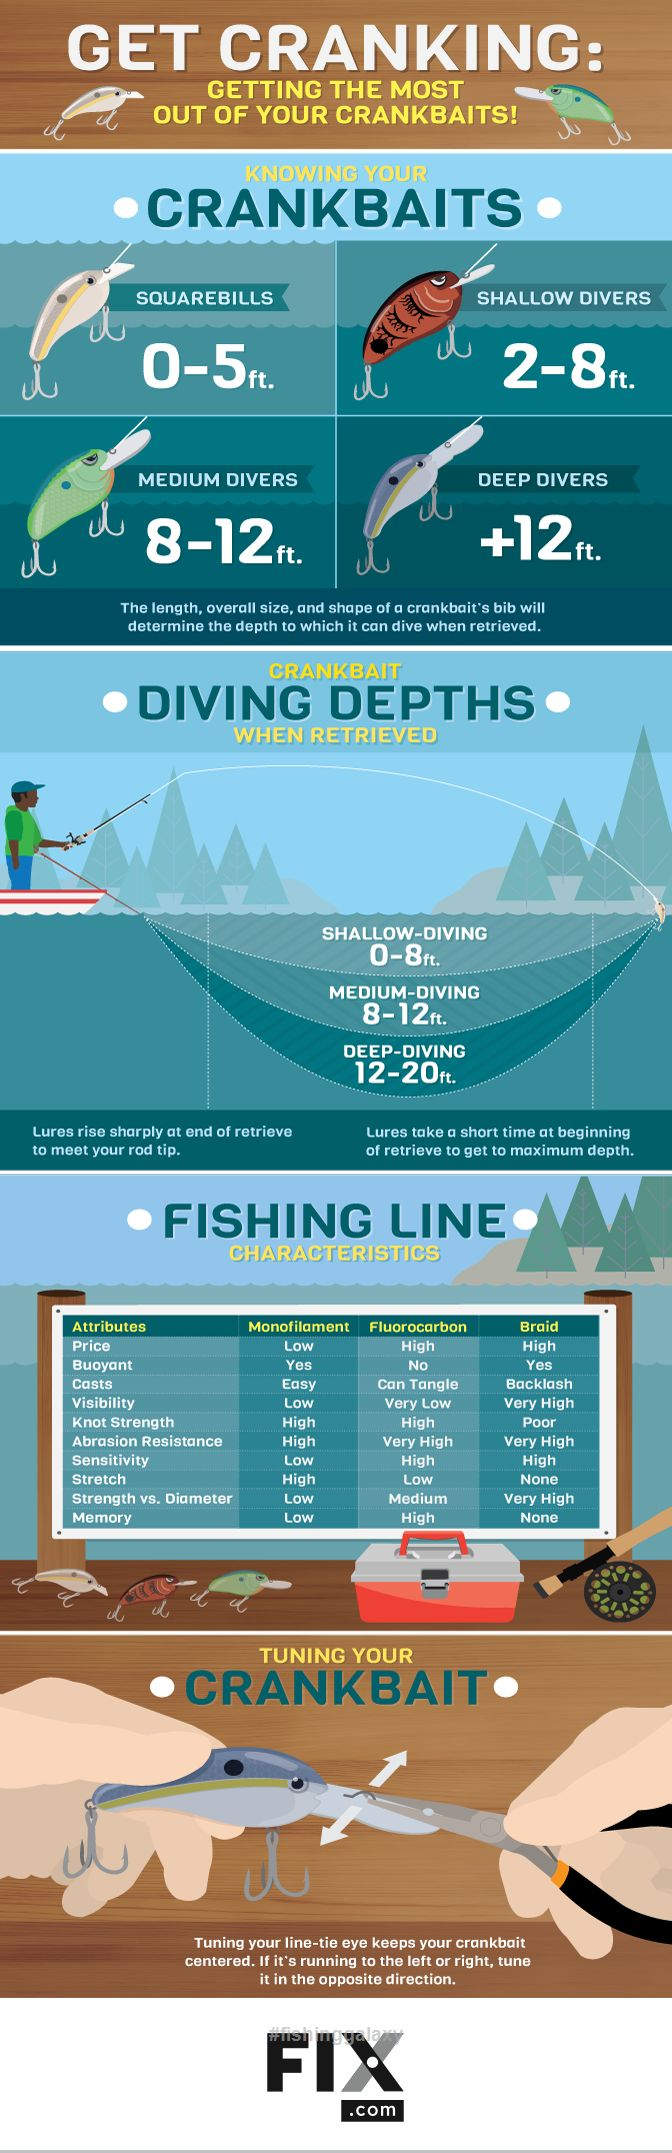 Follow Us to see more Bass Fishing Tips.